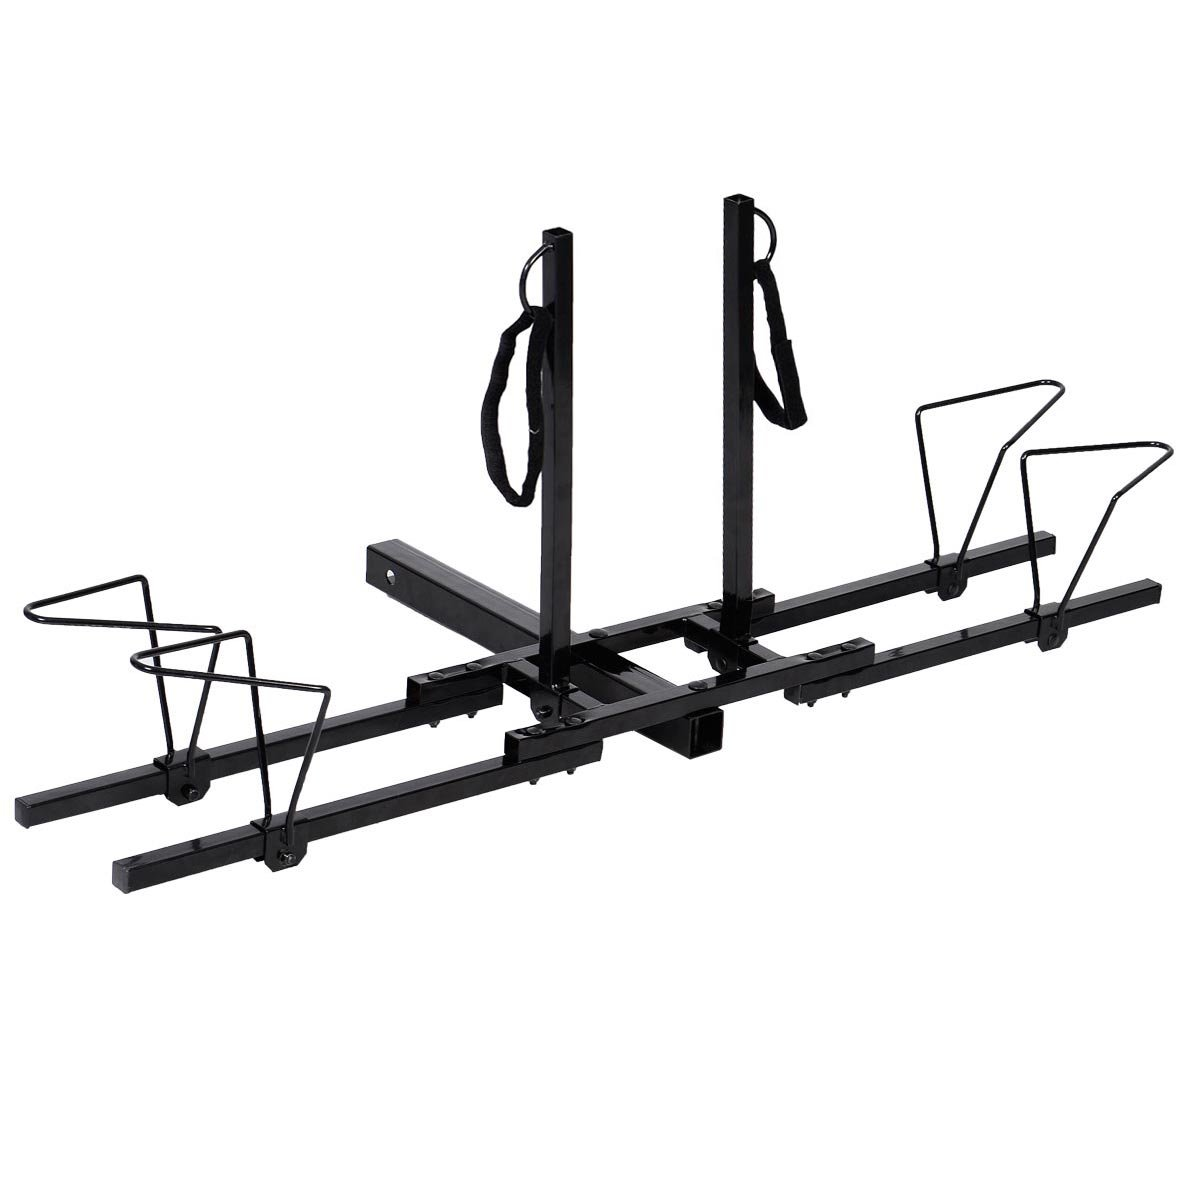 Giantex Upright Heavy Duty 2 Bike Bicycle Hitch Mount Carrier Platform Rack Truck SUV